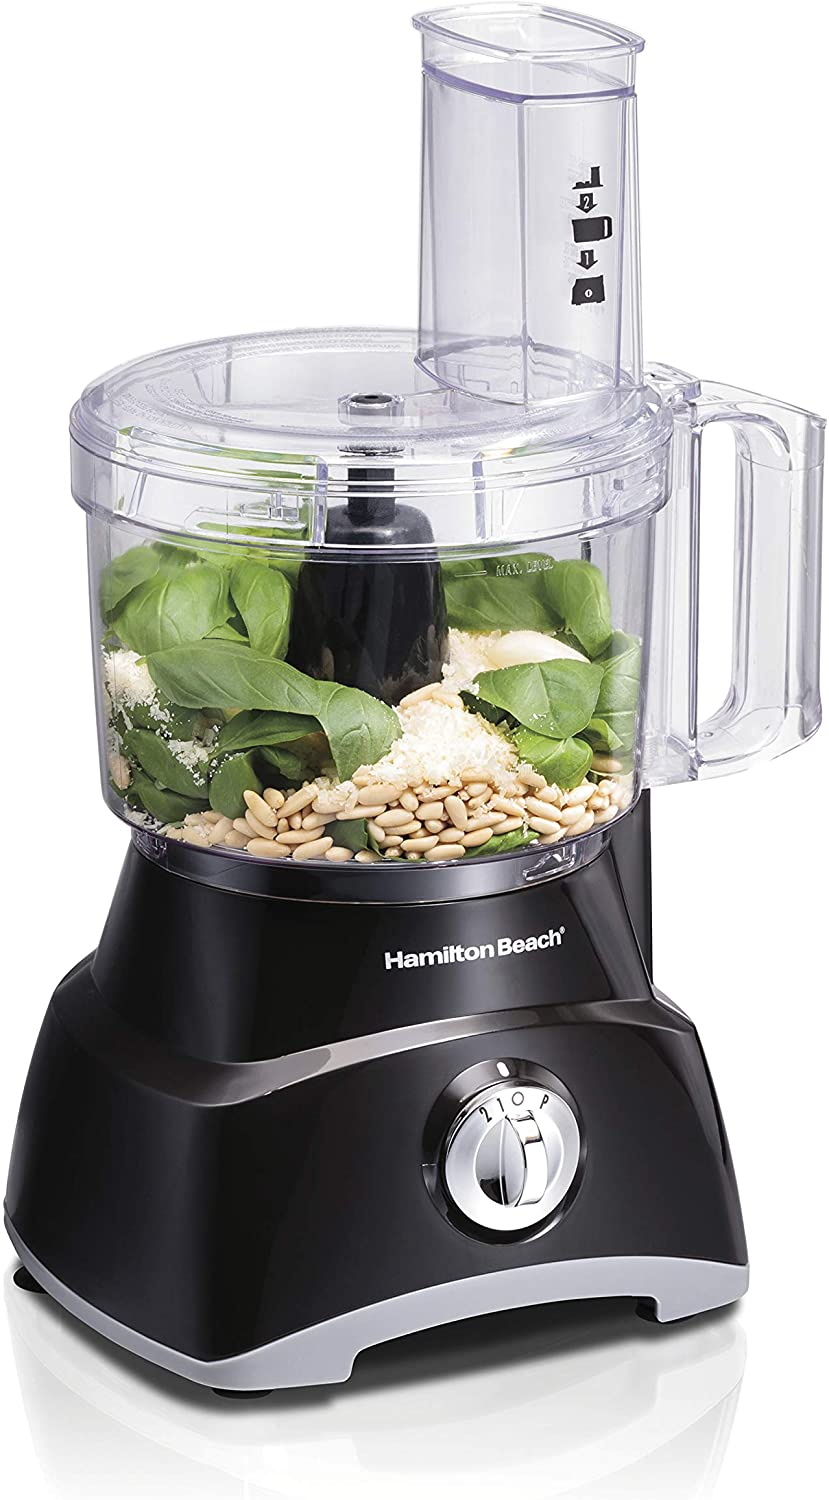 Hamilton Beach Food Processor & Vegetable Chopper for Slicing Shredding, Mincing, and Puree, 8 Cup, Black